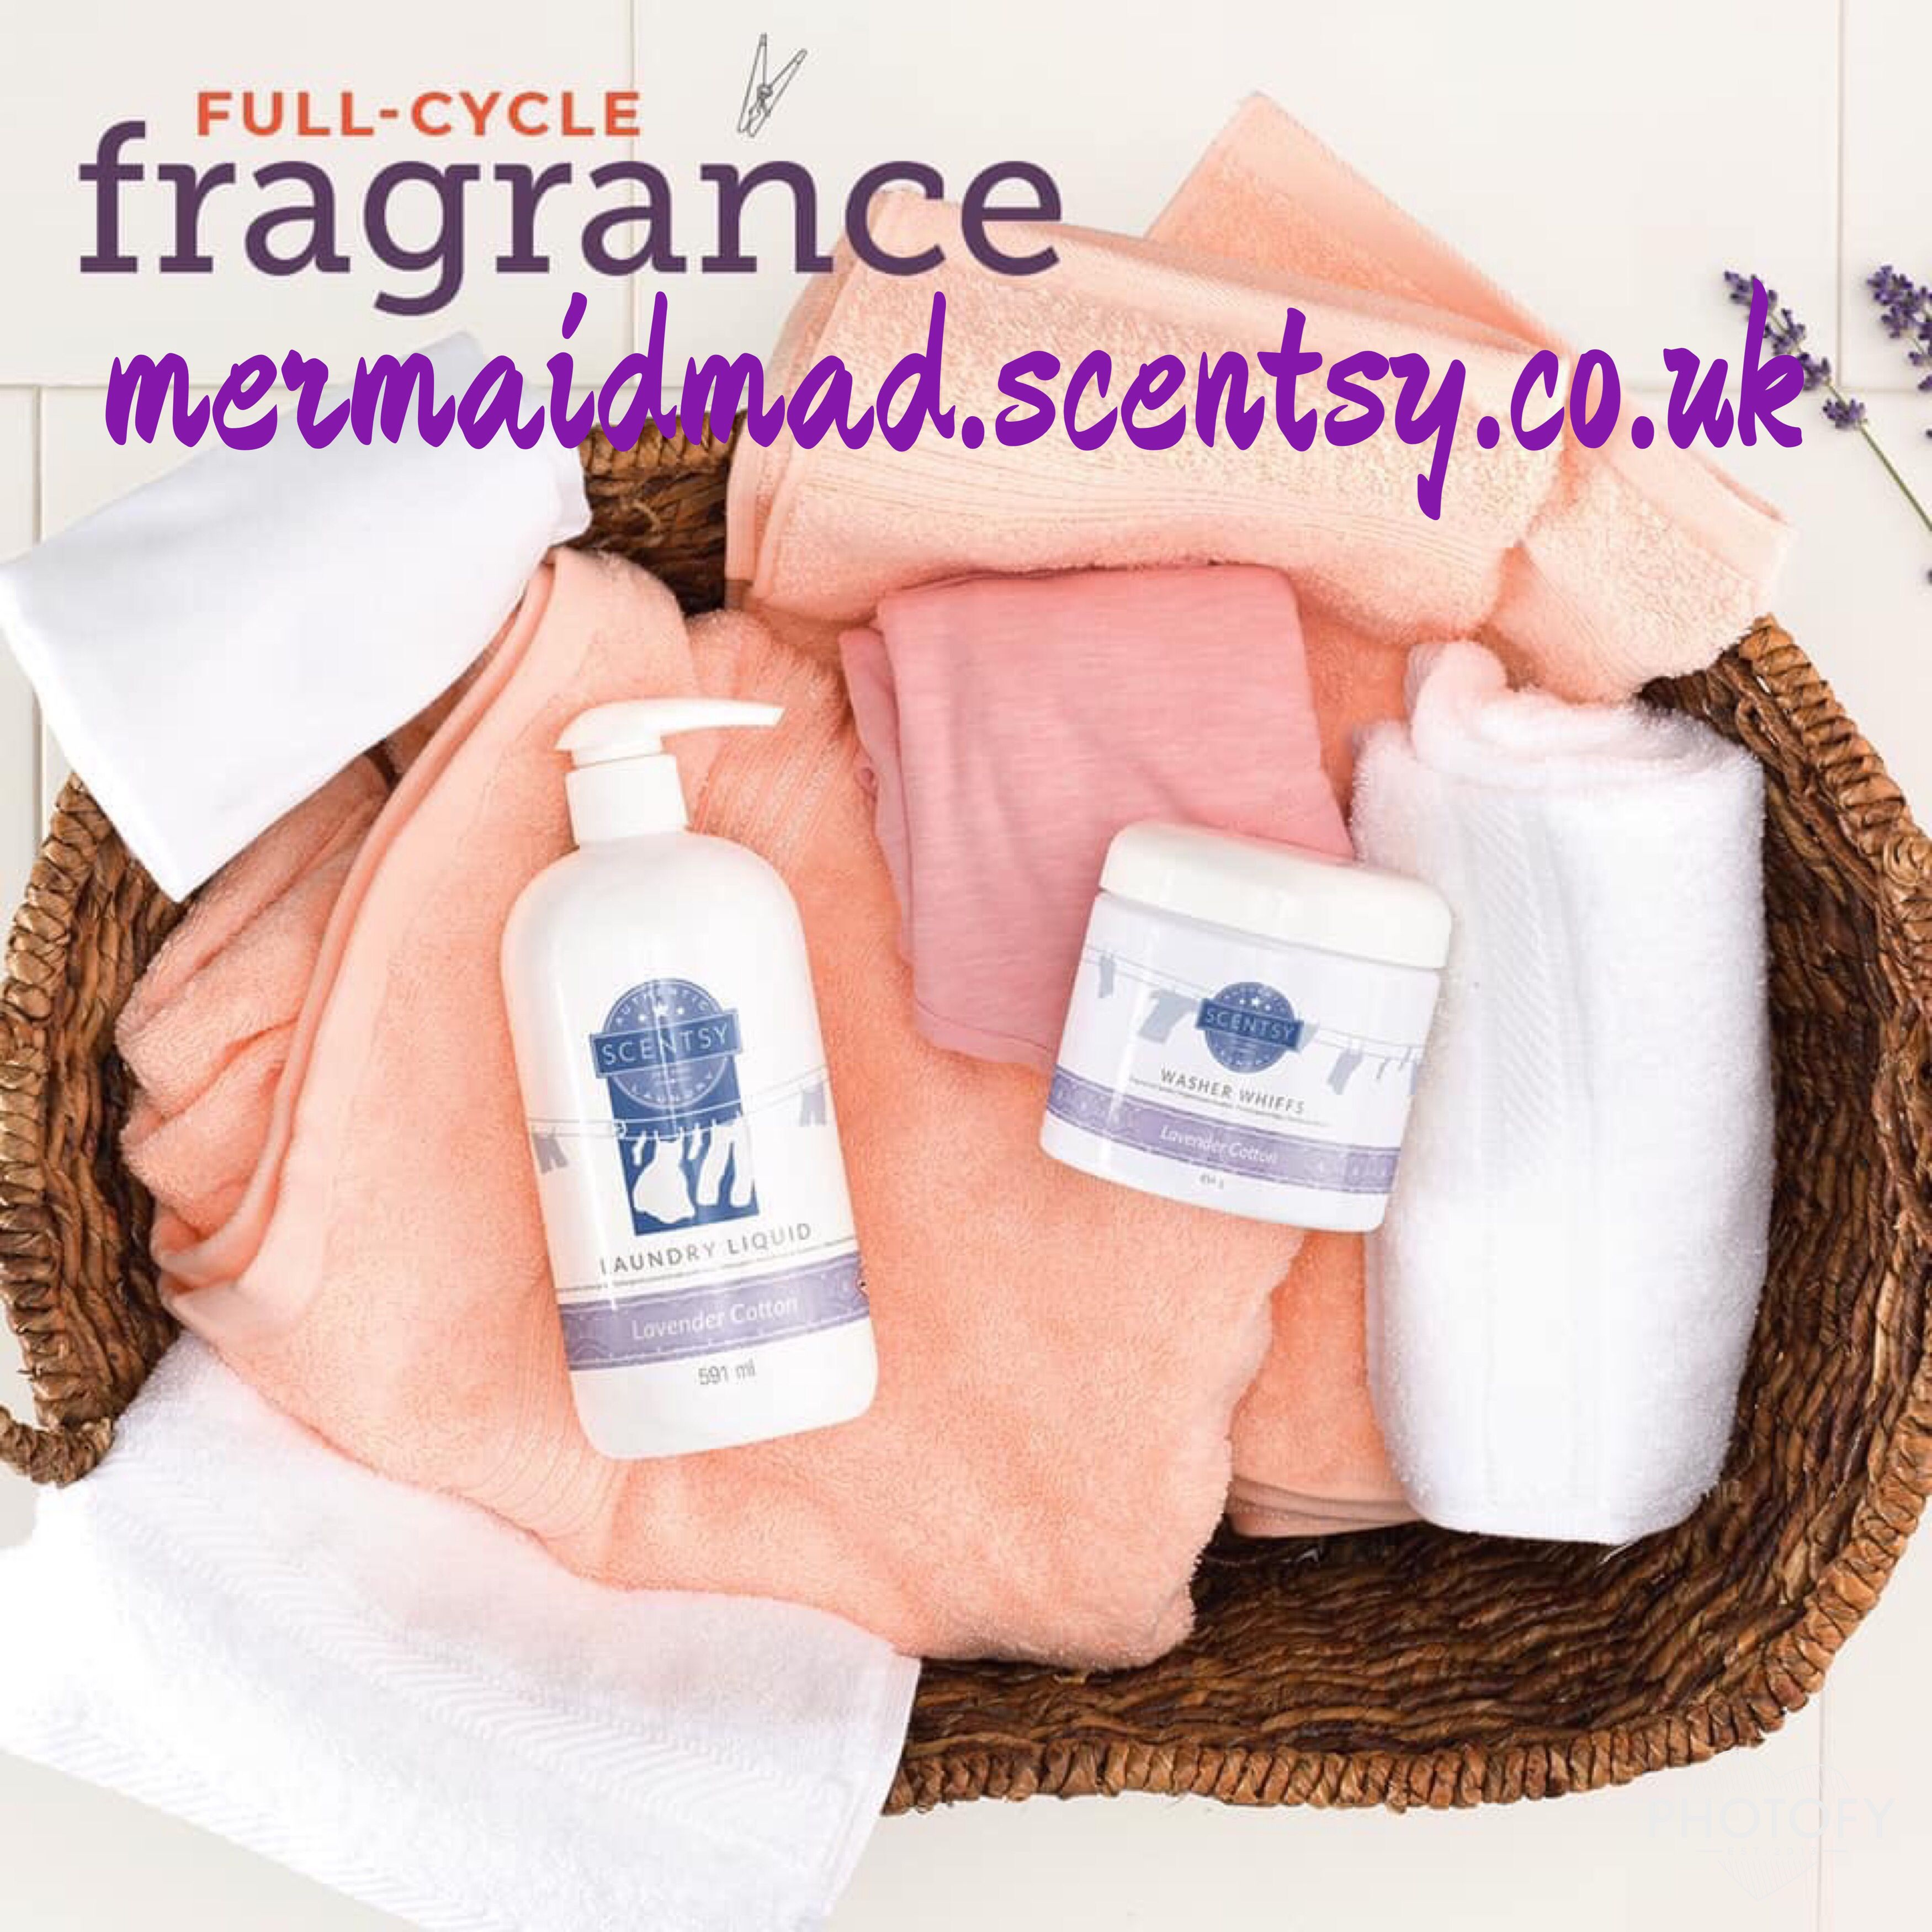 Get Your Washing Smelling Amazing With The Latest Detergent